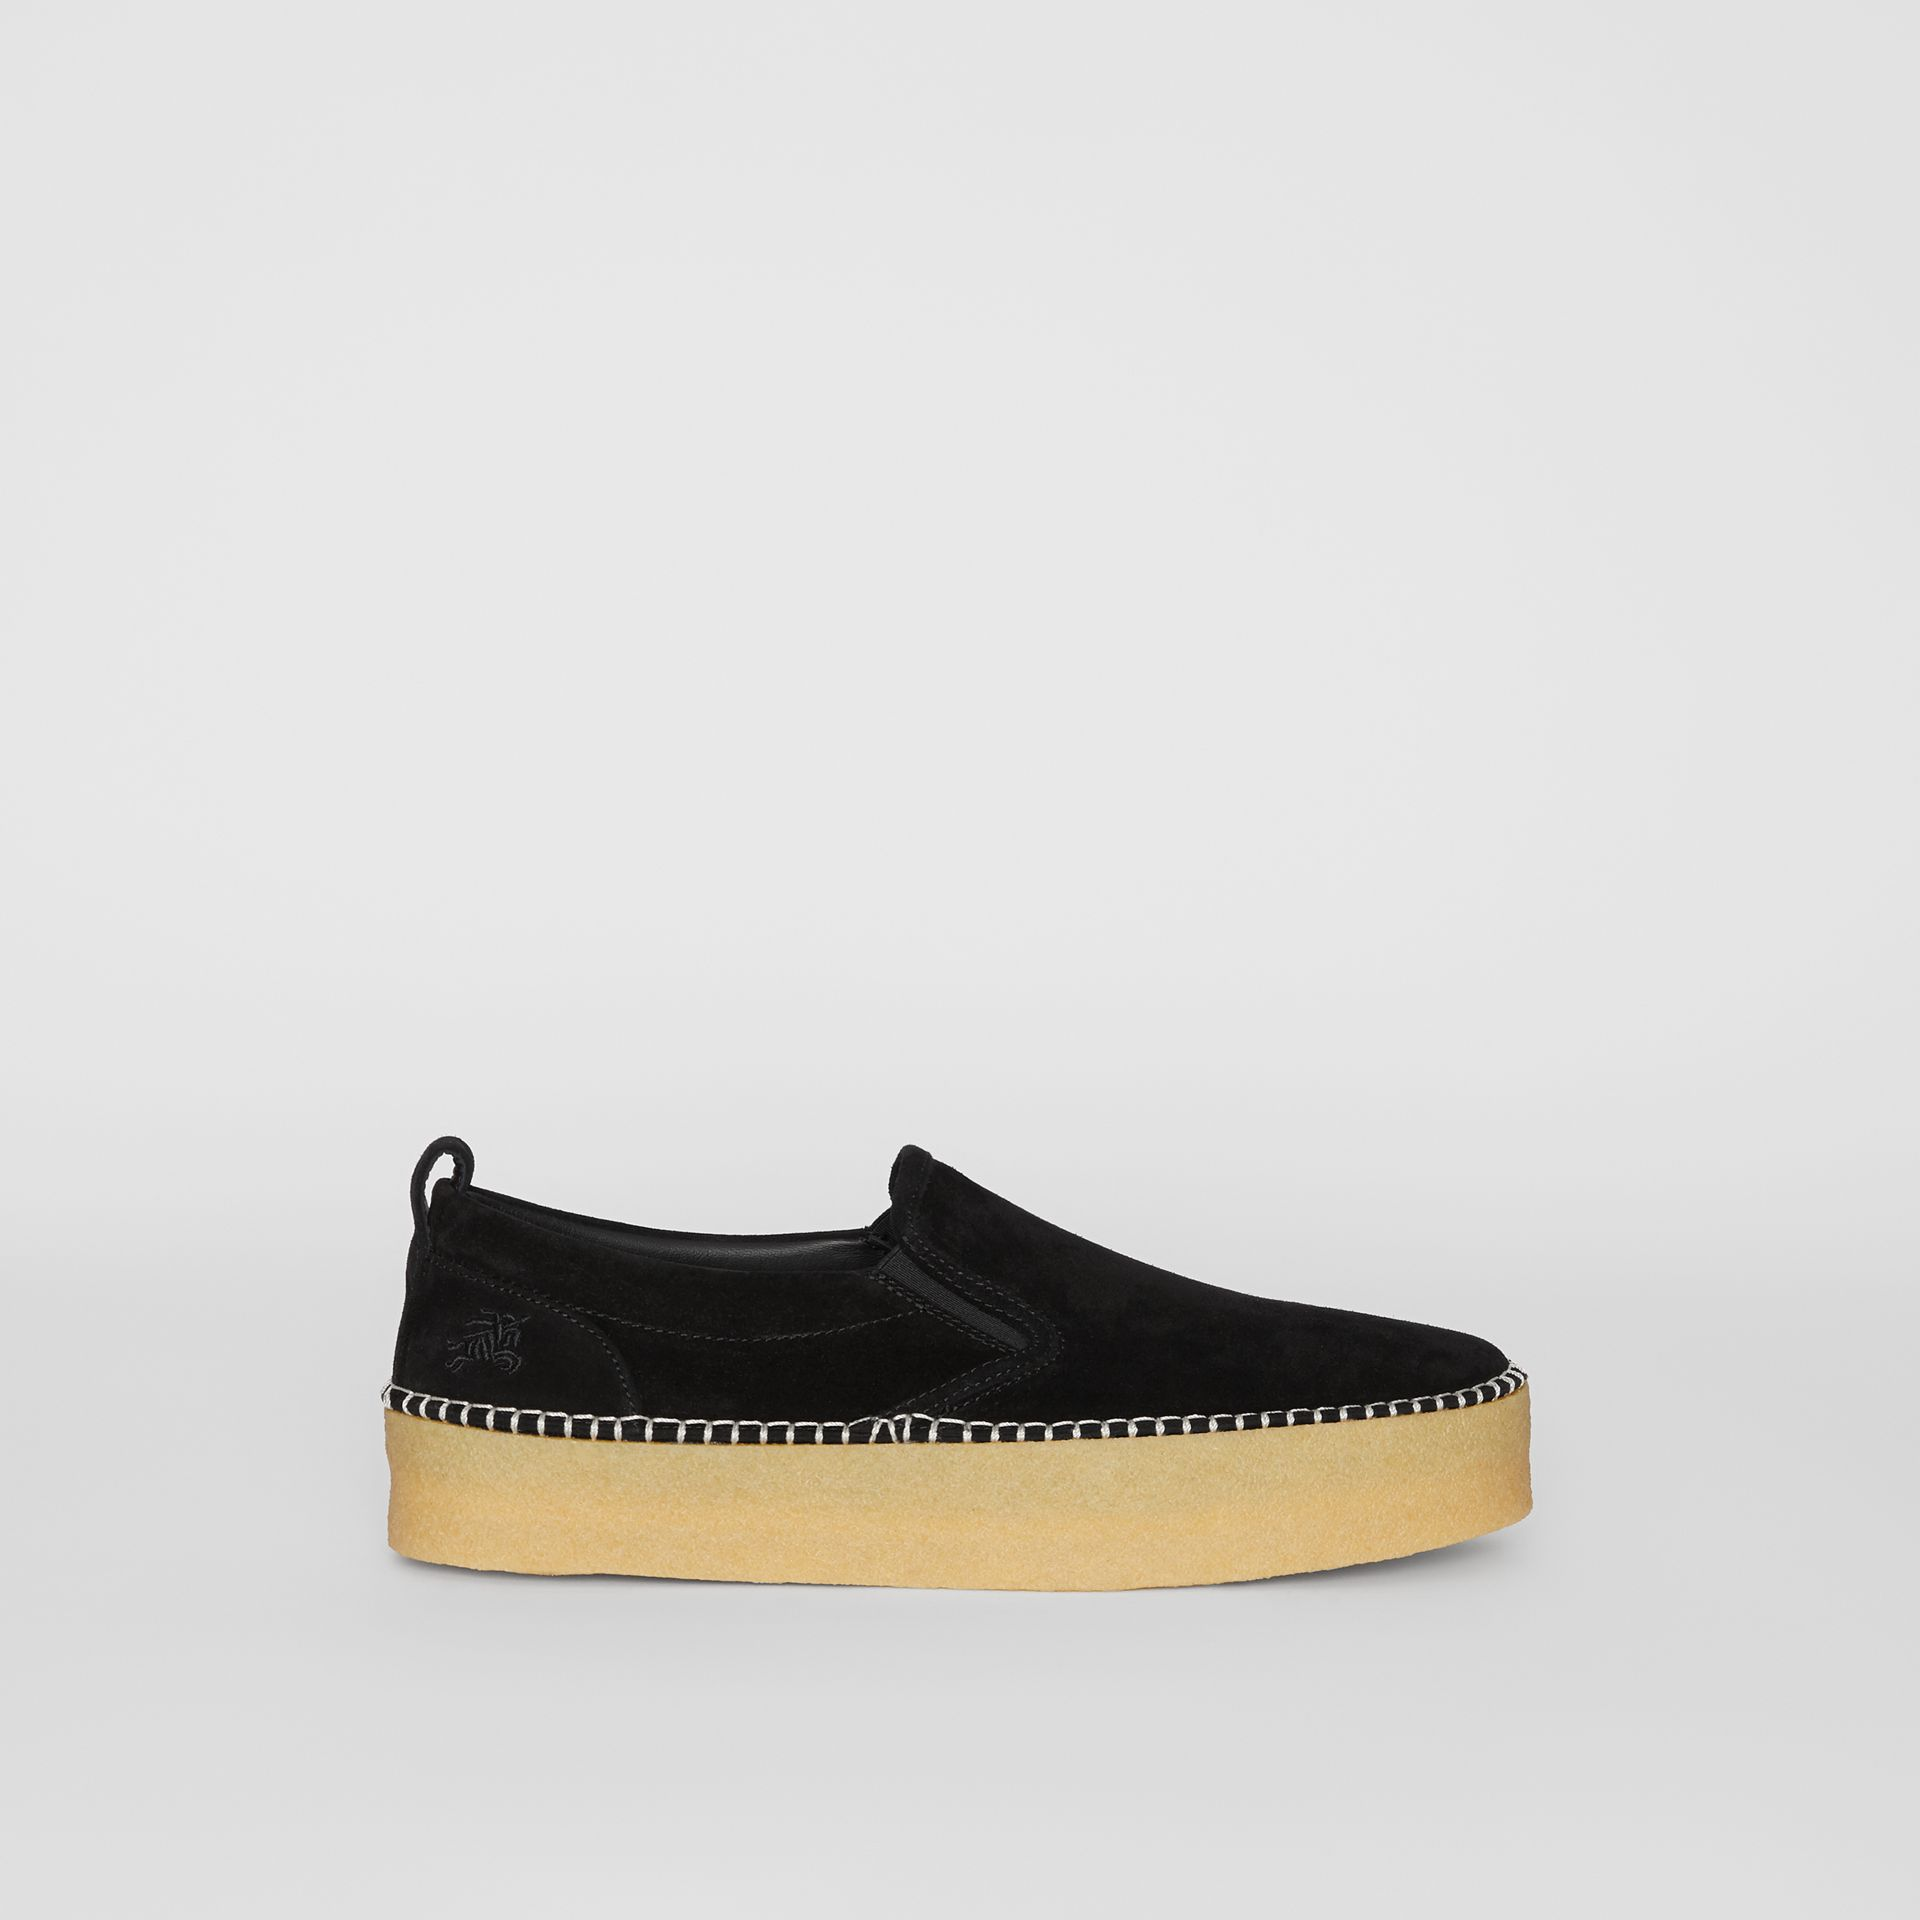 Suede Slip-on Sneakers in Black - Men | Burberry - gallery image 5